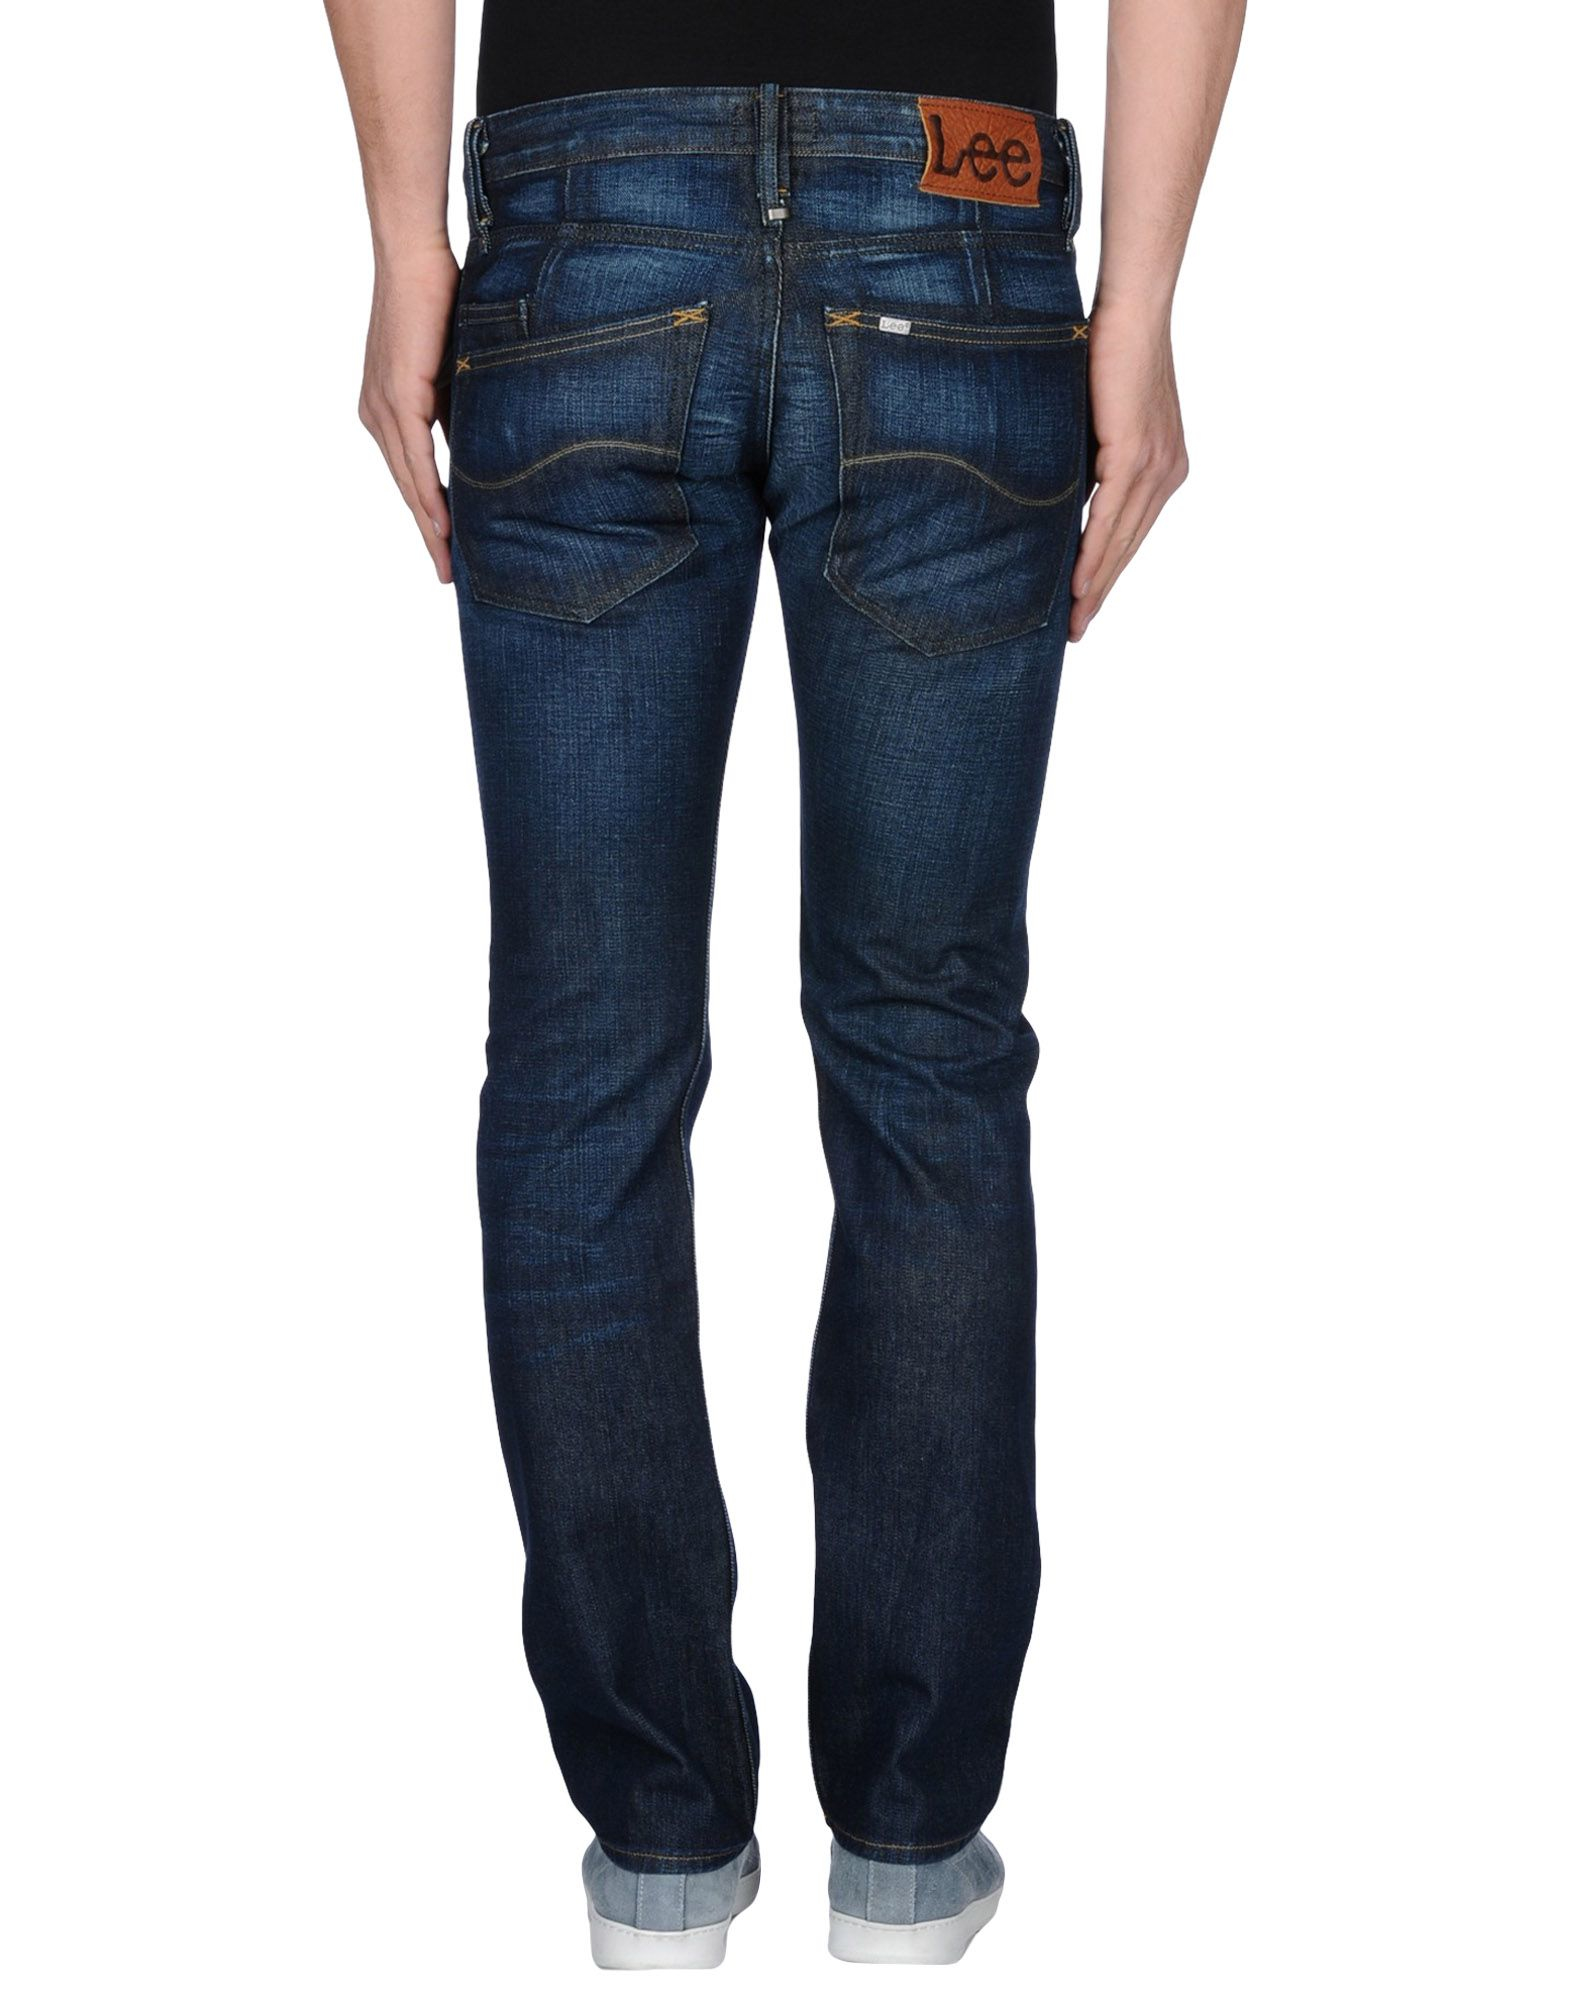 Lyst - Lee Jeans Denim Trousers in Blue for Men